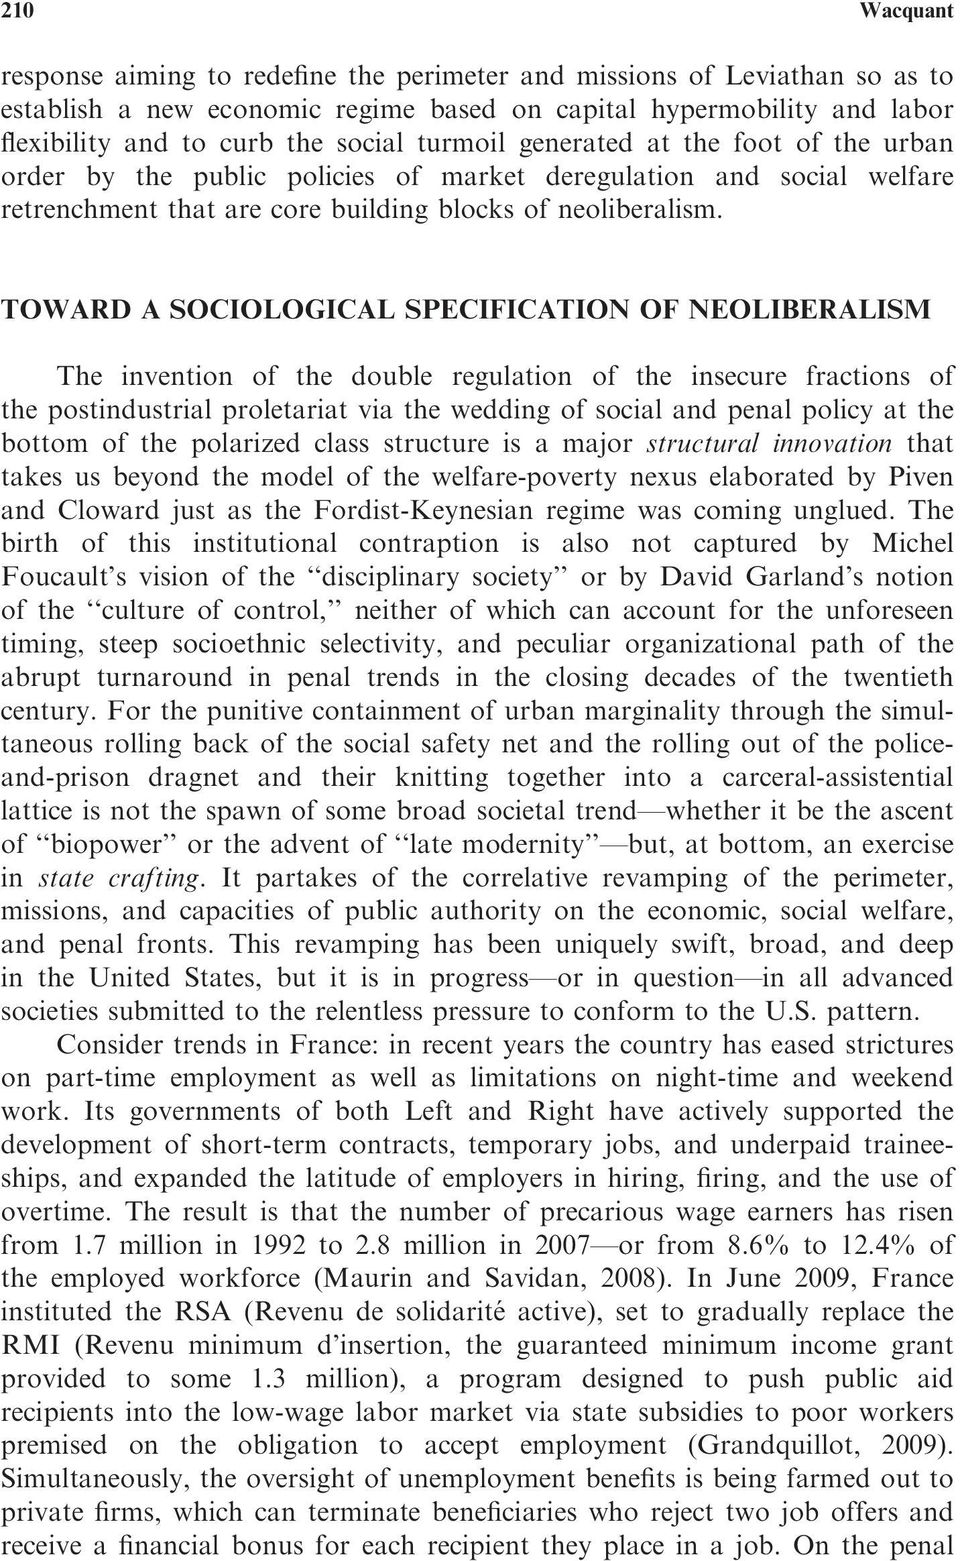 TOWARD A SOCIOLOGICAL SPECIFICATION OF NEOLIBERALISM The invention of the double regulation of the insecure fractions of the postindustrial proletariat via the wedding of social and penal policy at